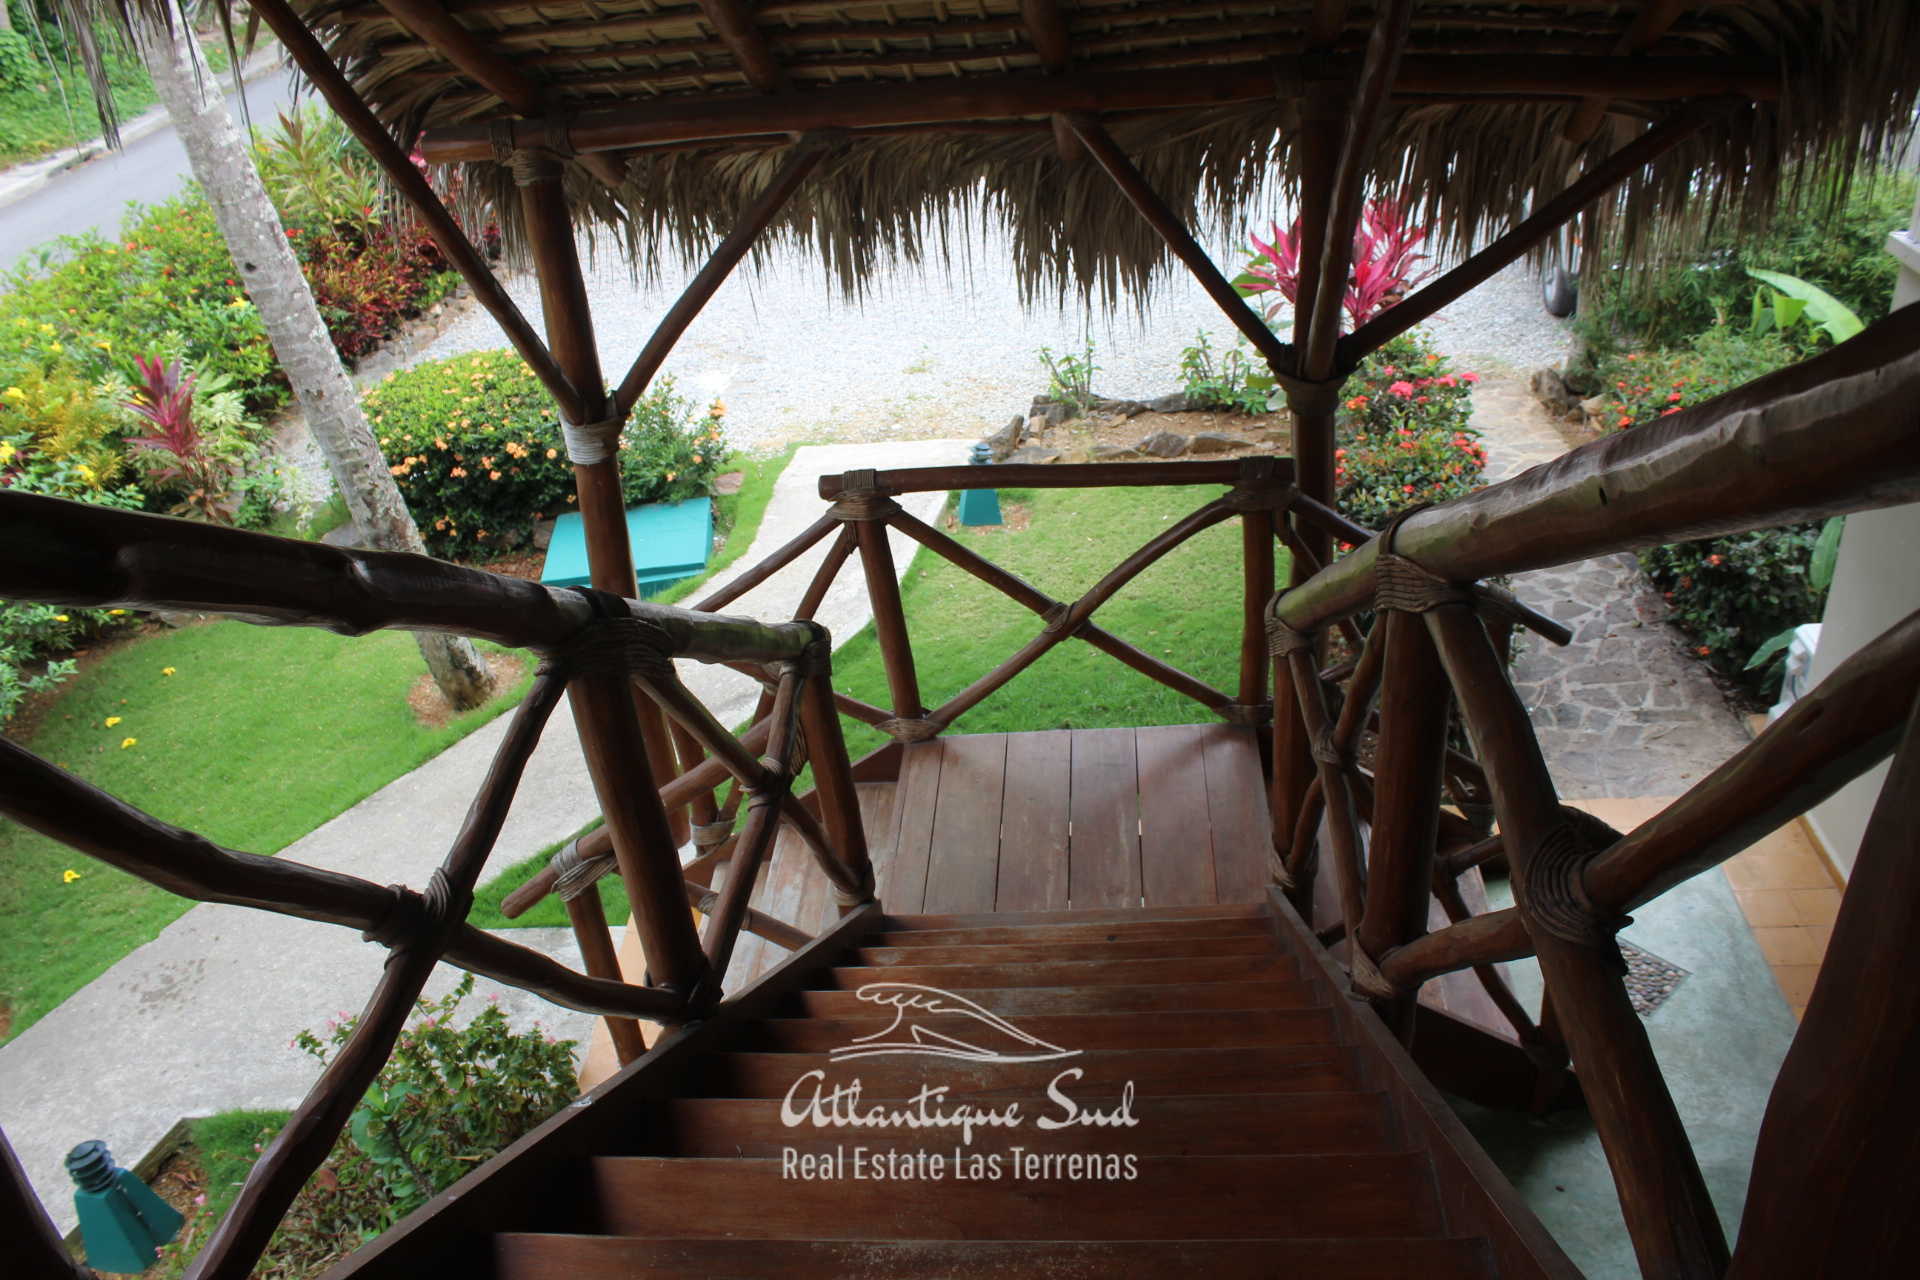 For-sale-Apartment-in-beachfront-community-with-mezzanine-Las-Terrenas_4831 (1).JPG